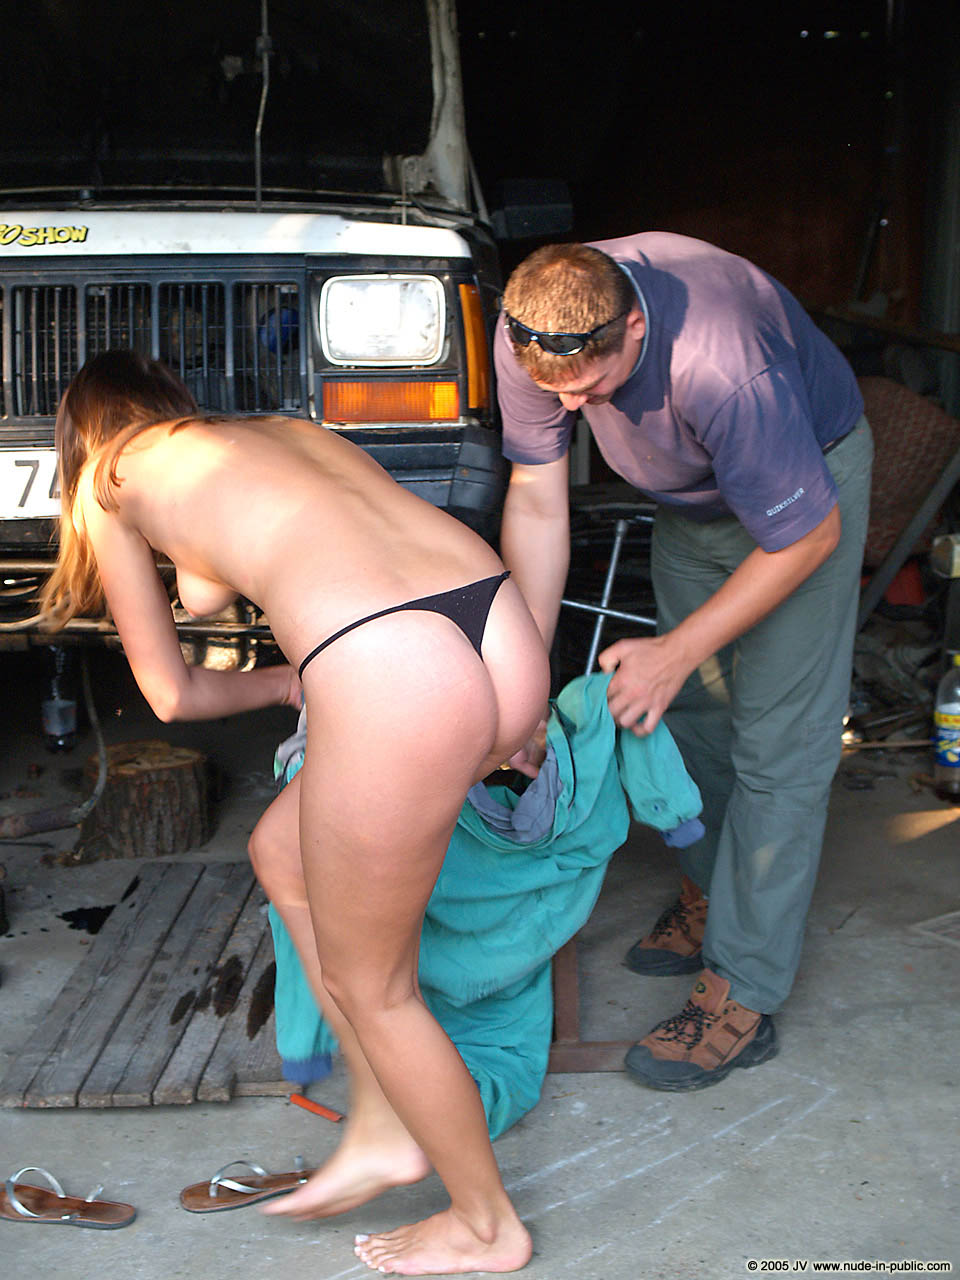 veronika-e-junkyard-cars-mechanic-nude-in-public-06